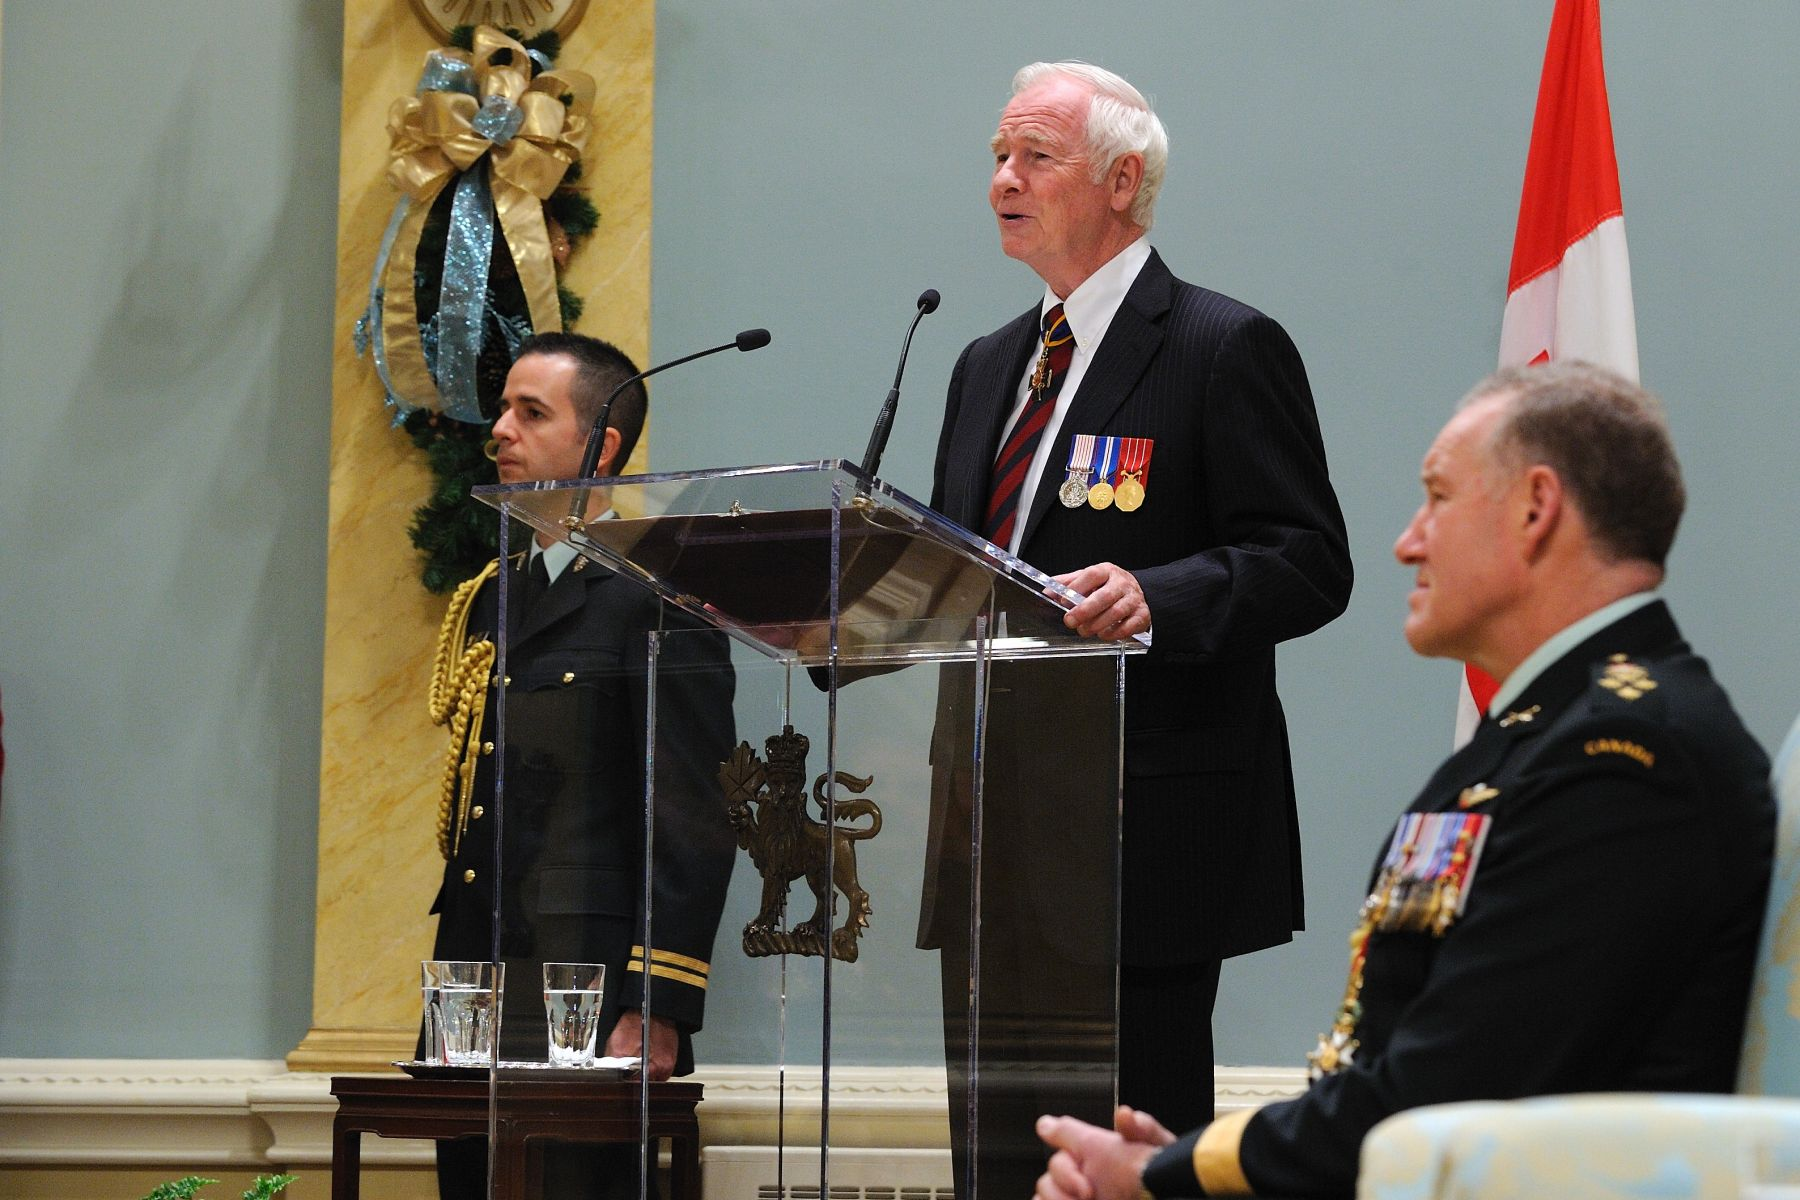 "His Excellency the Right Honourable David Johnston, Governor General and Commander-in-Chief of Canada, presided over an Order of Military Merit investiture ceremony at Rideau Hall on December 2, 2011. ""Let me speak for a moment on merit,"" said His Excellency. ""The motto of the Order, ""Service before Self,"" is fitting, as every single member has shown that being a member of the Canadian Forces is not a job, but a calling. They have gone above and beyond all expectations and have brought great honour to this country."""